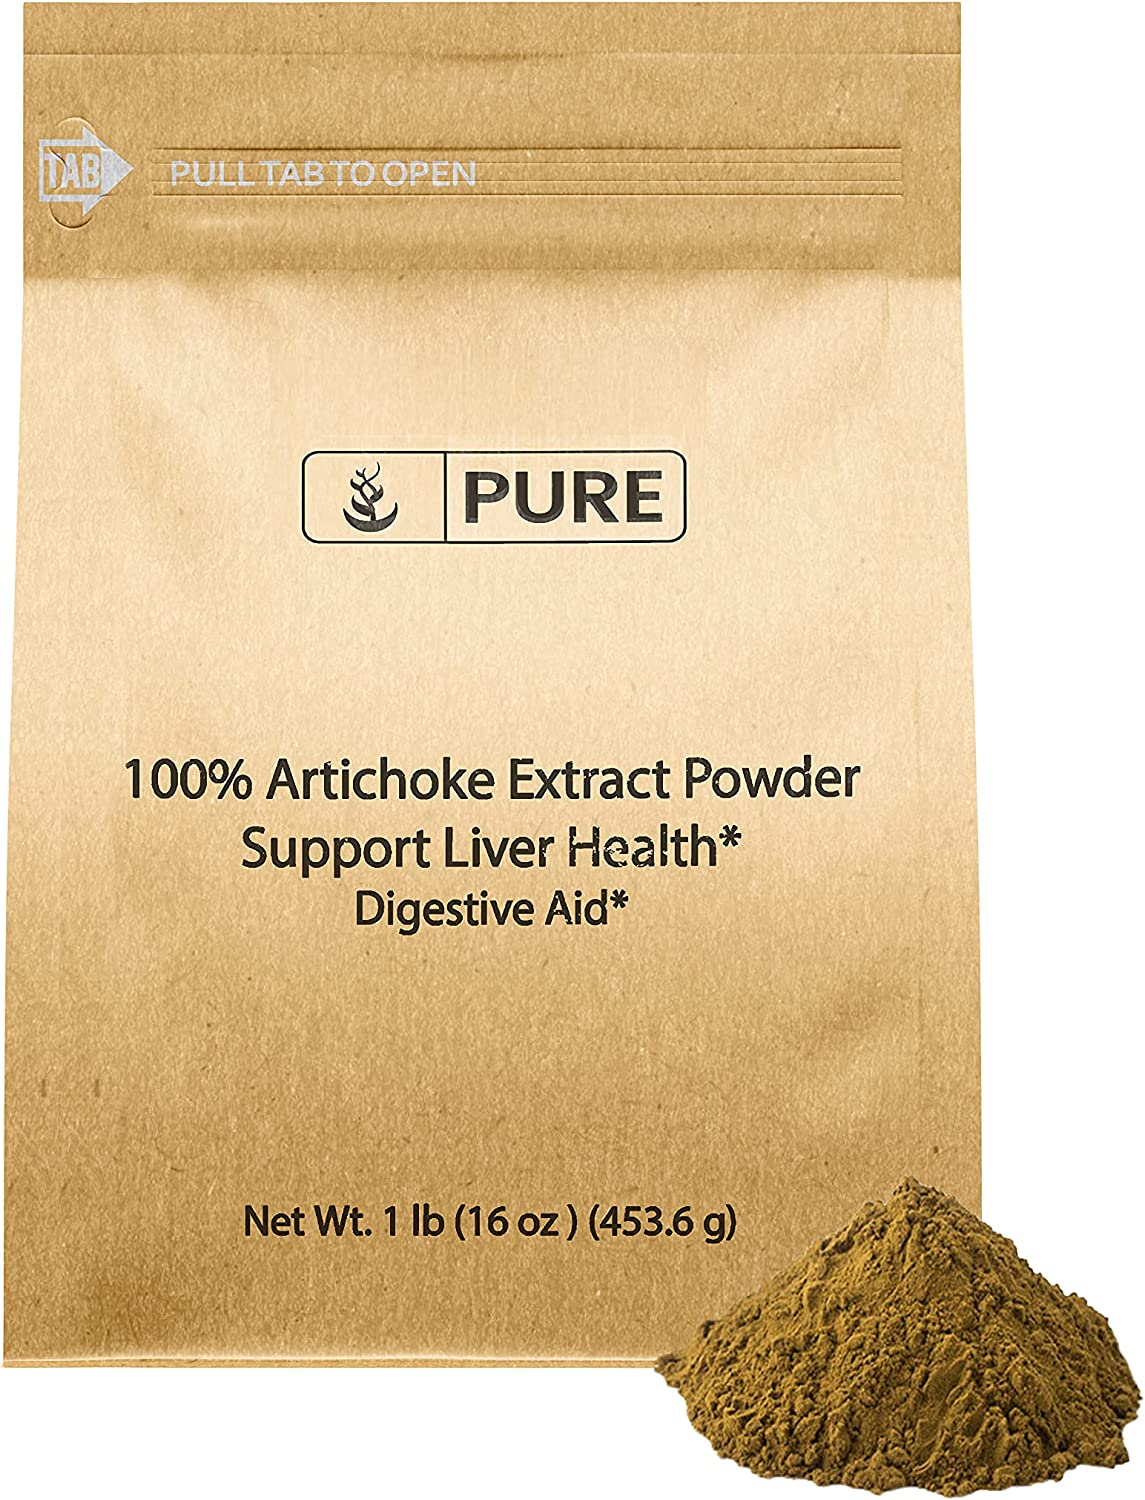 OFFicial shop Artichoke Extract Powder 1 lb System Liver Free shipping on posting reviews Health Digestive